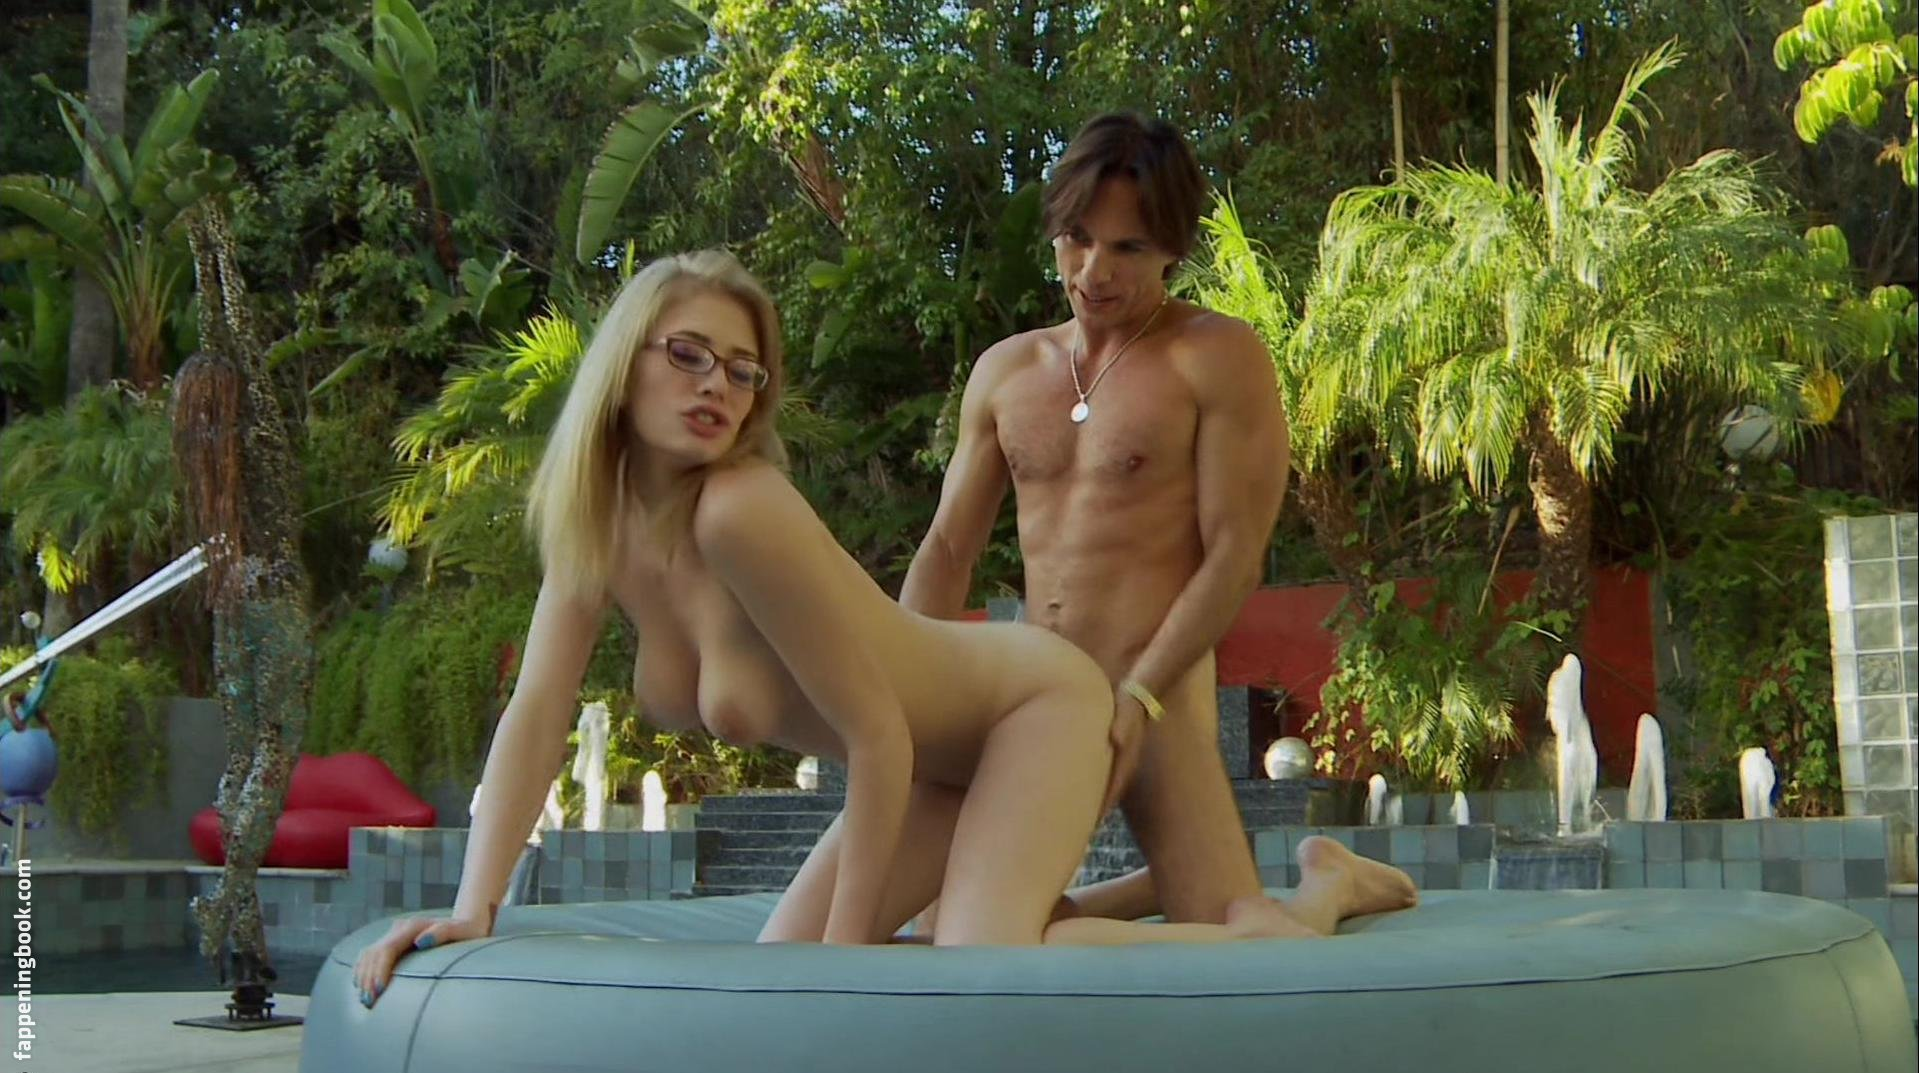 Allie James Nude allie james nude, sexy, the fappening, uncensored - photo